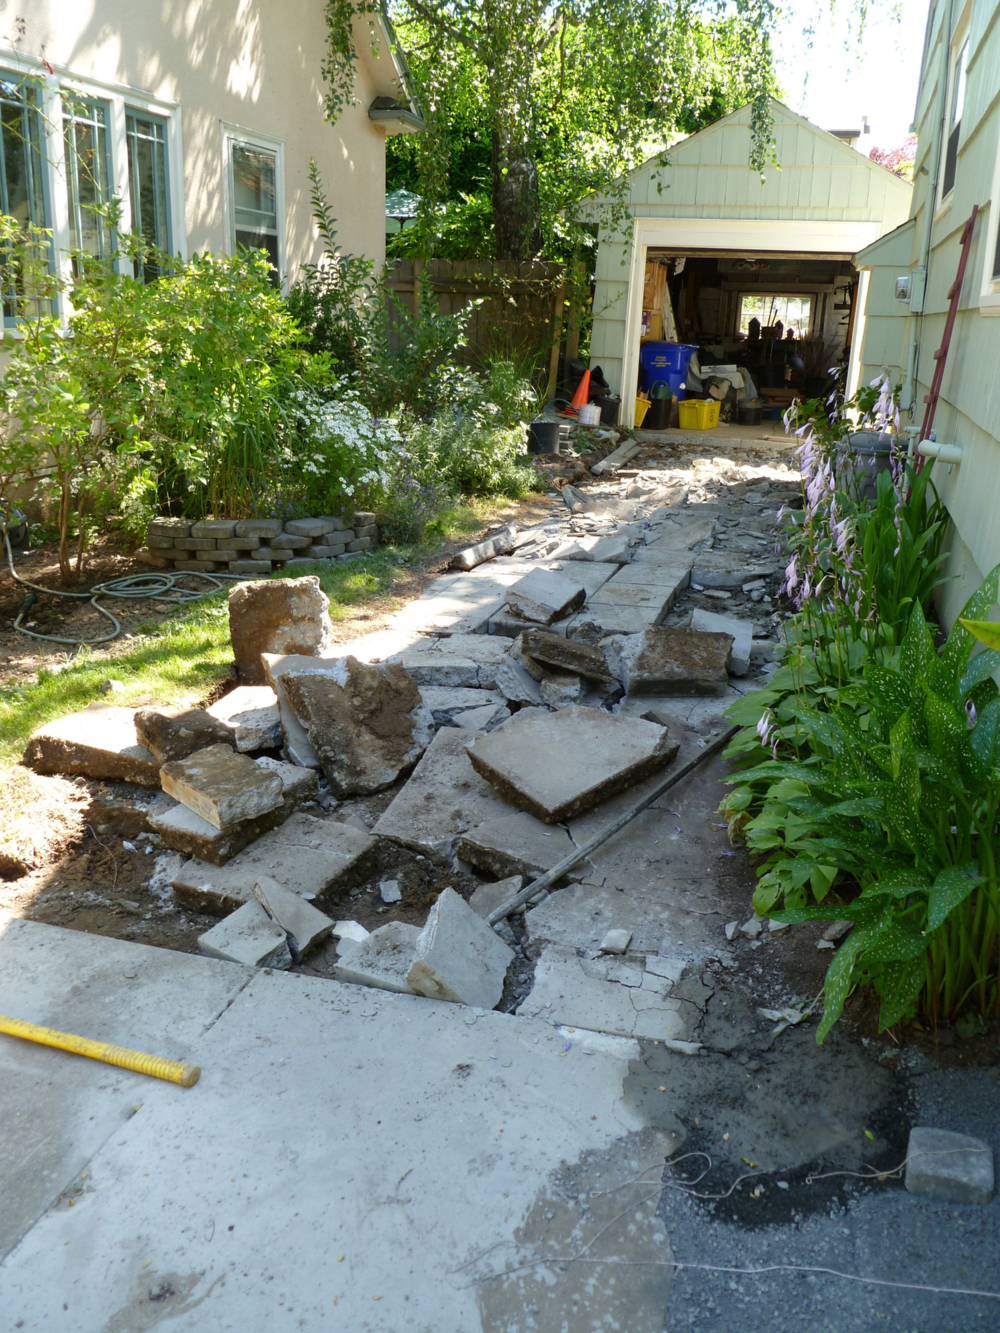 The driveway DURING demolition.  July 2010.